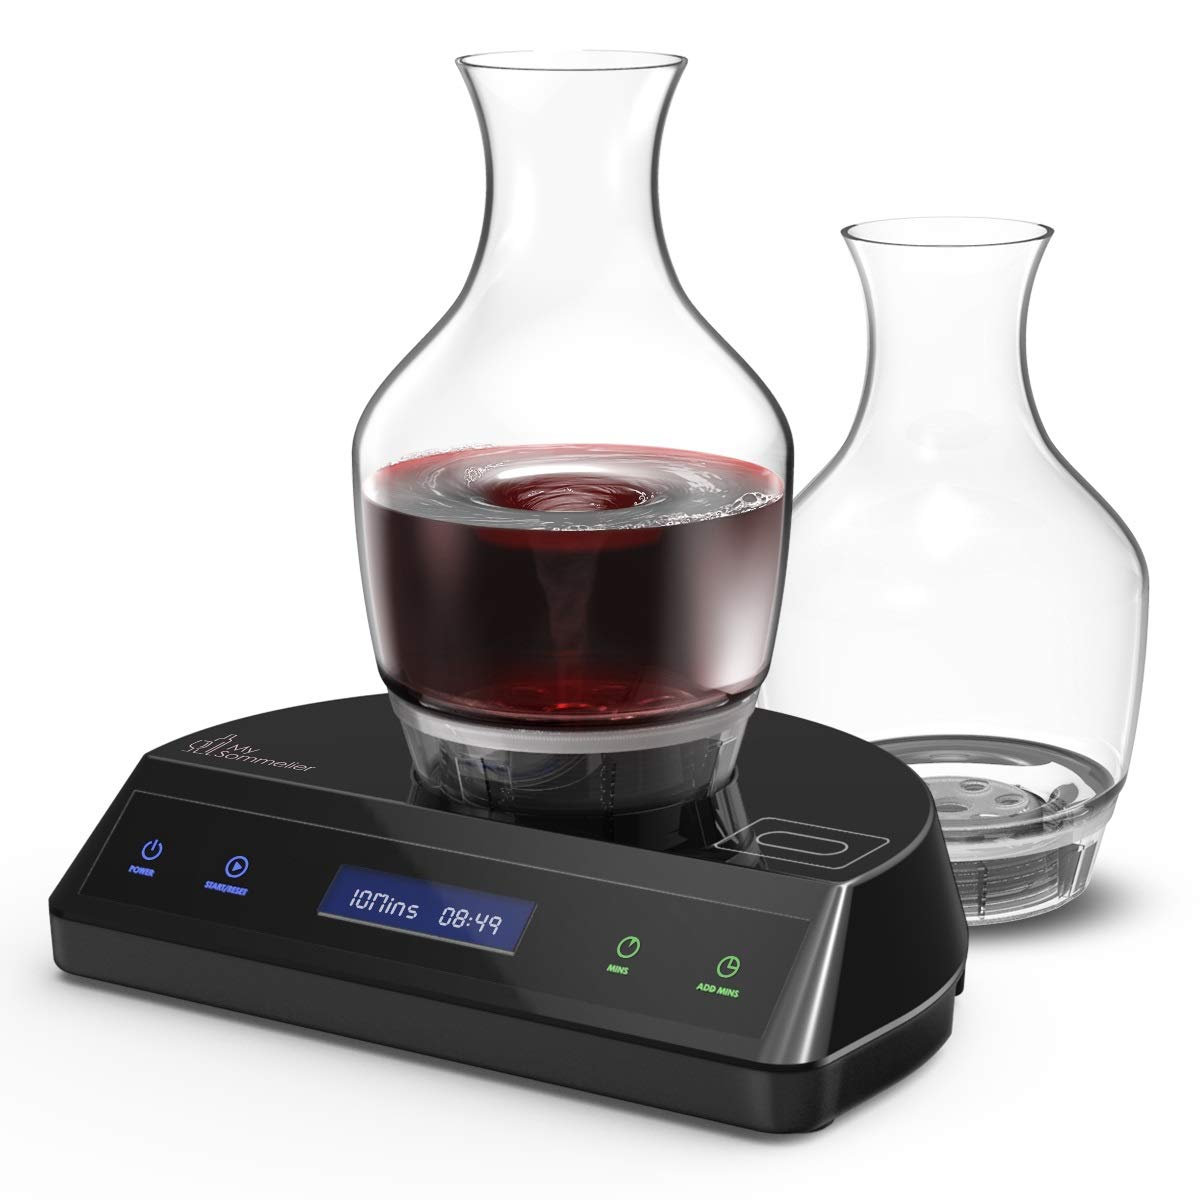 HUMBEE Chef DT-01-BKB2 Deluxe Edition Electric Wine Aerating Decanter Black